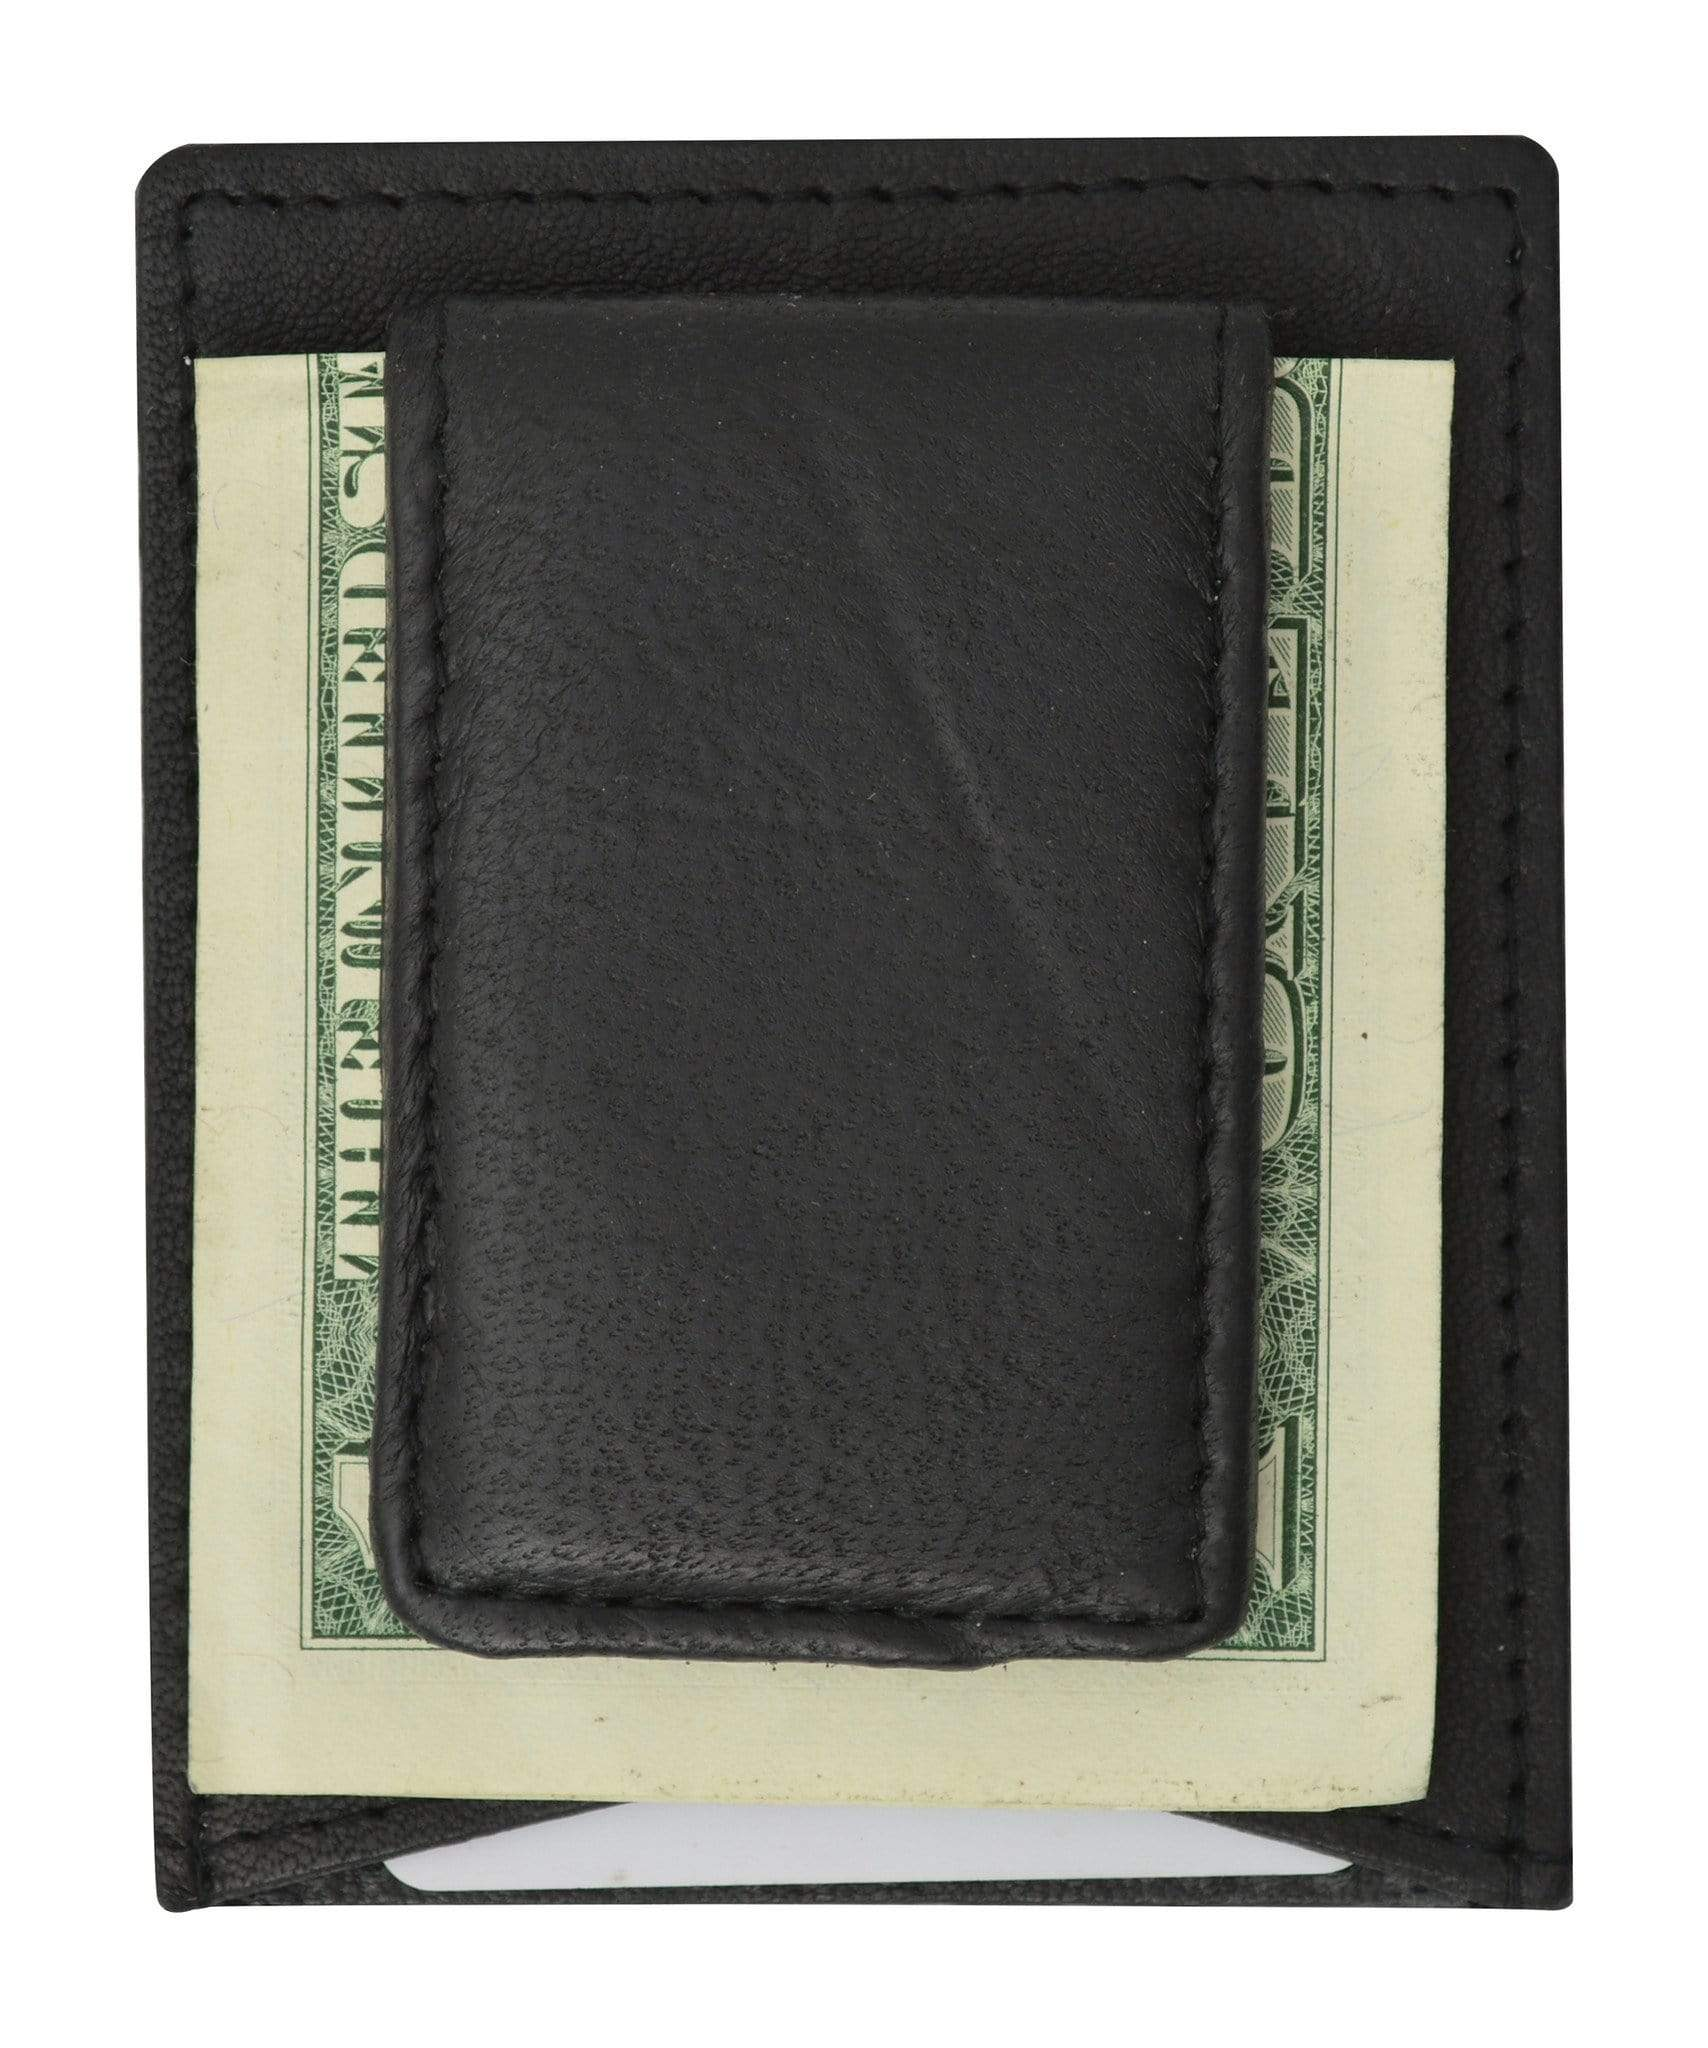 a38cbd93ced2 Mens Genuine Leather Magnetic Money Clip Credit Card Holder Wallet ...